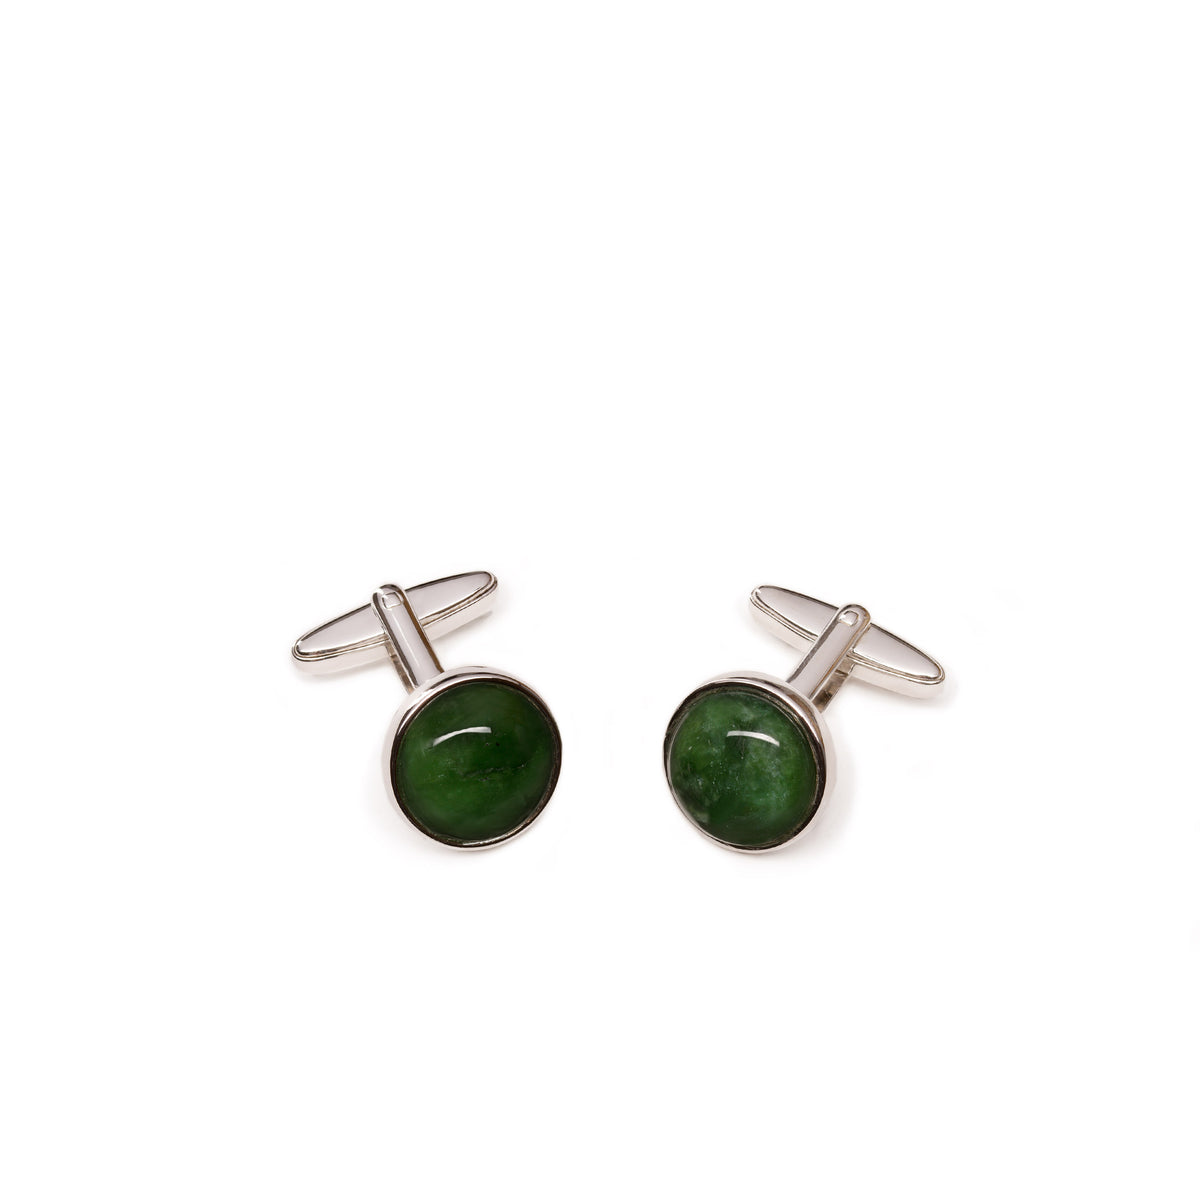 New Zealand Jade // B026RDCUFF-4 / 15mm (l) x 15mm (w)